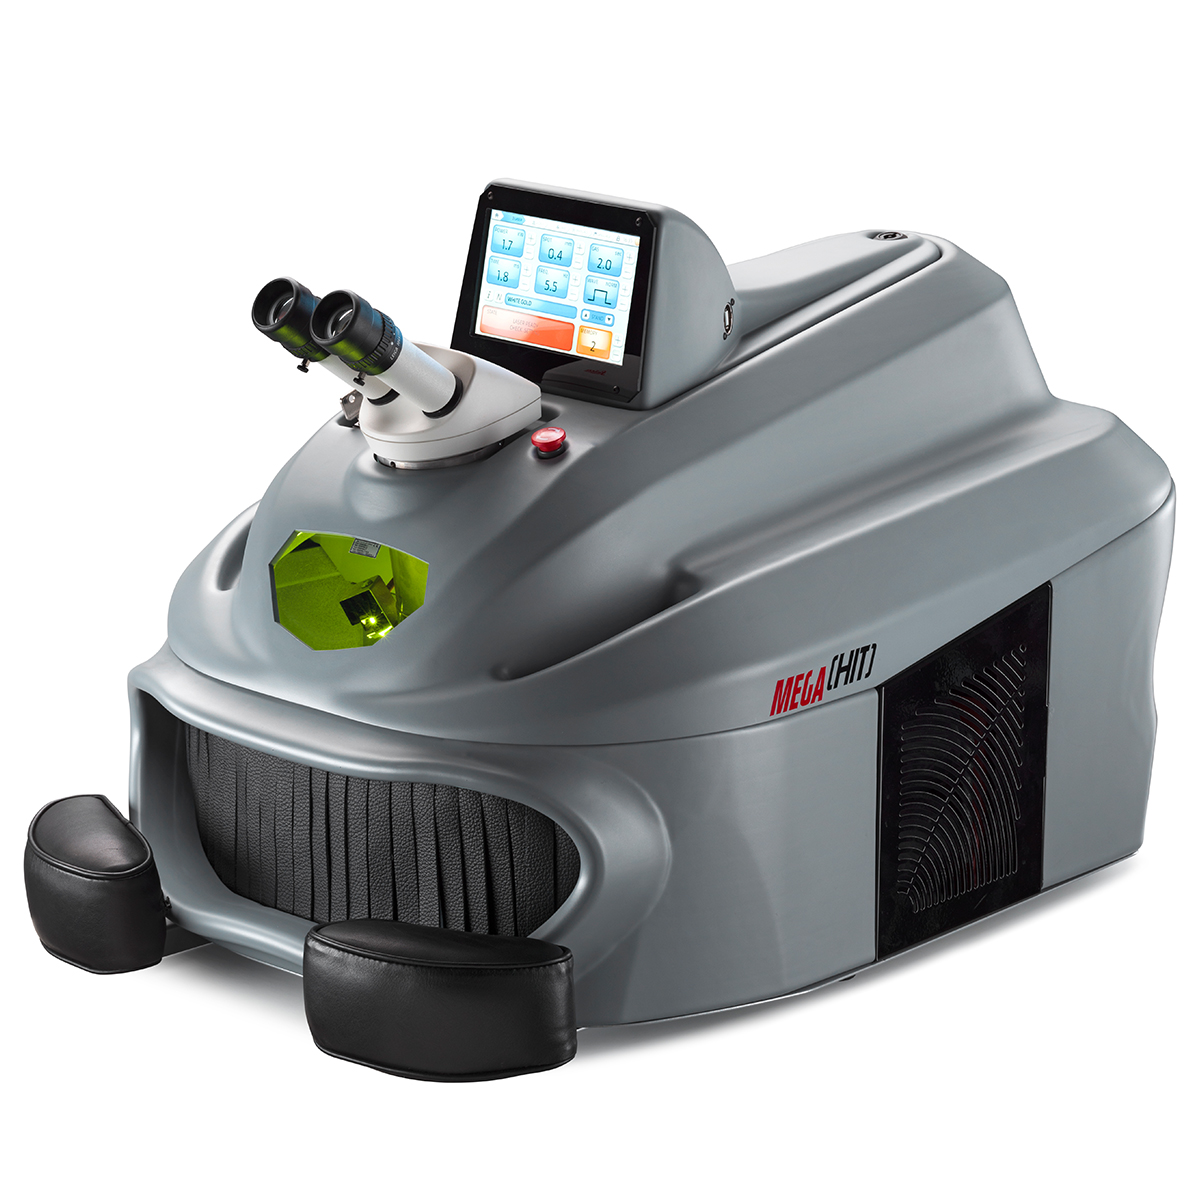 Elettrolaser MegaHit Dental and Jewelry Laser Welder